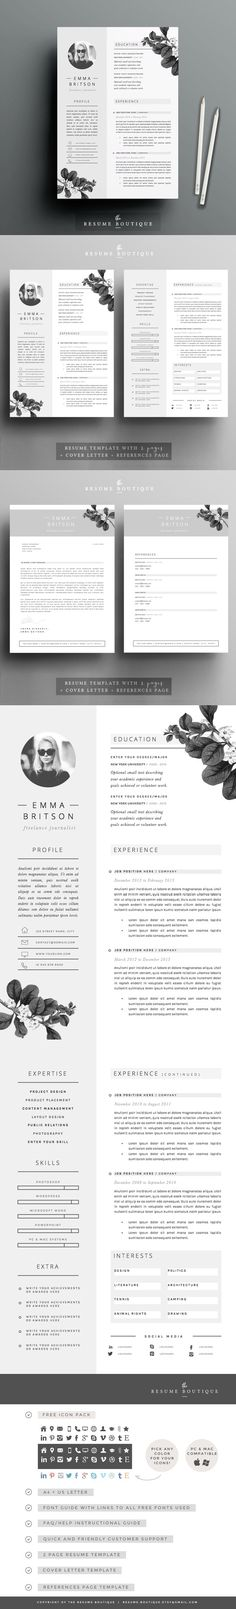 Resume Template 4 pages Minerva Resume, Templates and Resume - interactive resume template